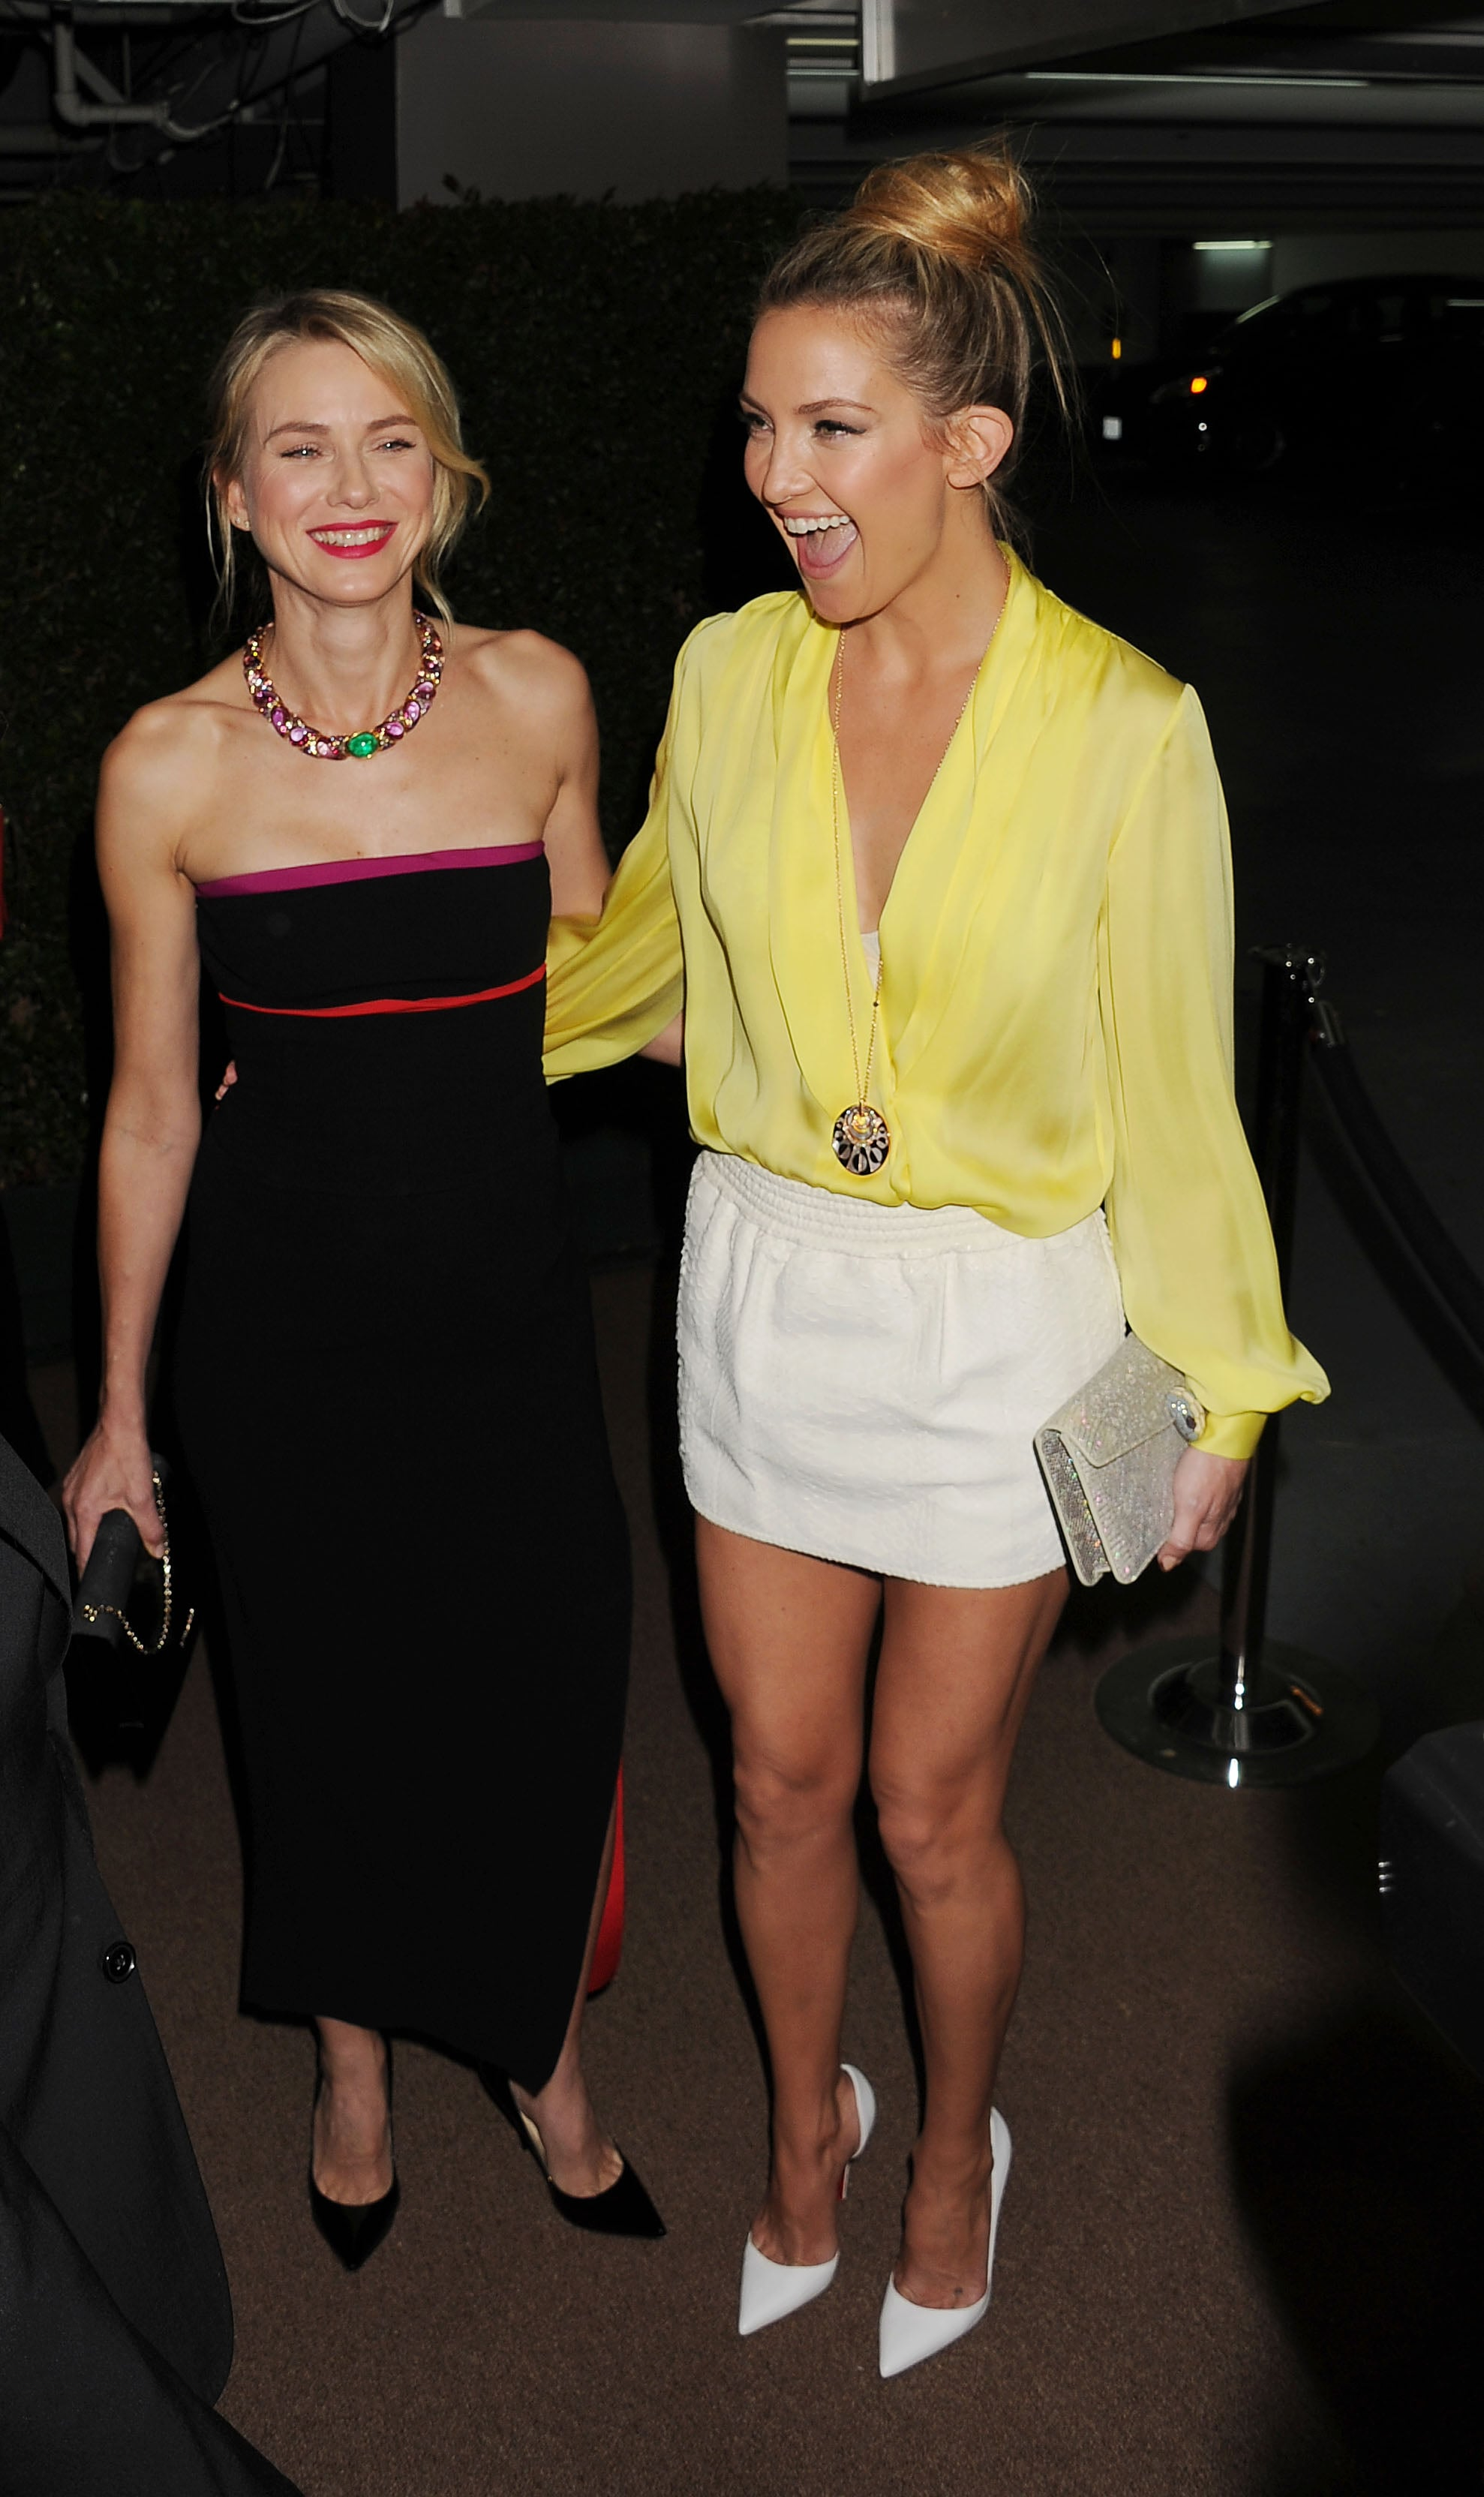 Naomi Watts hosted Bulgari's party on Tuesday, which brought out her pal Kate Hudson.